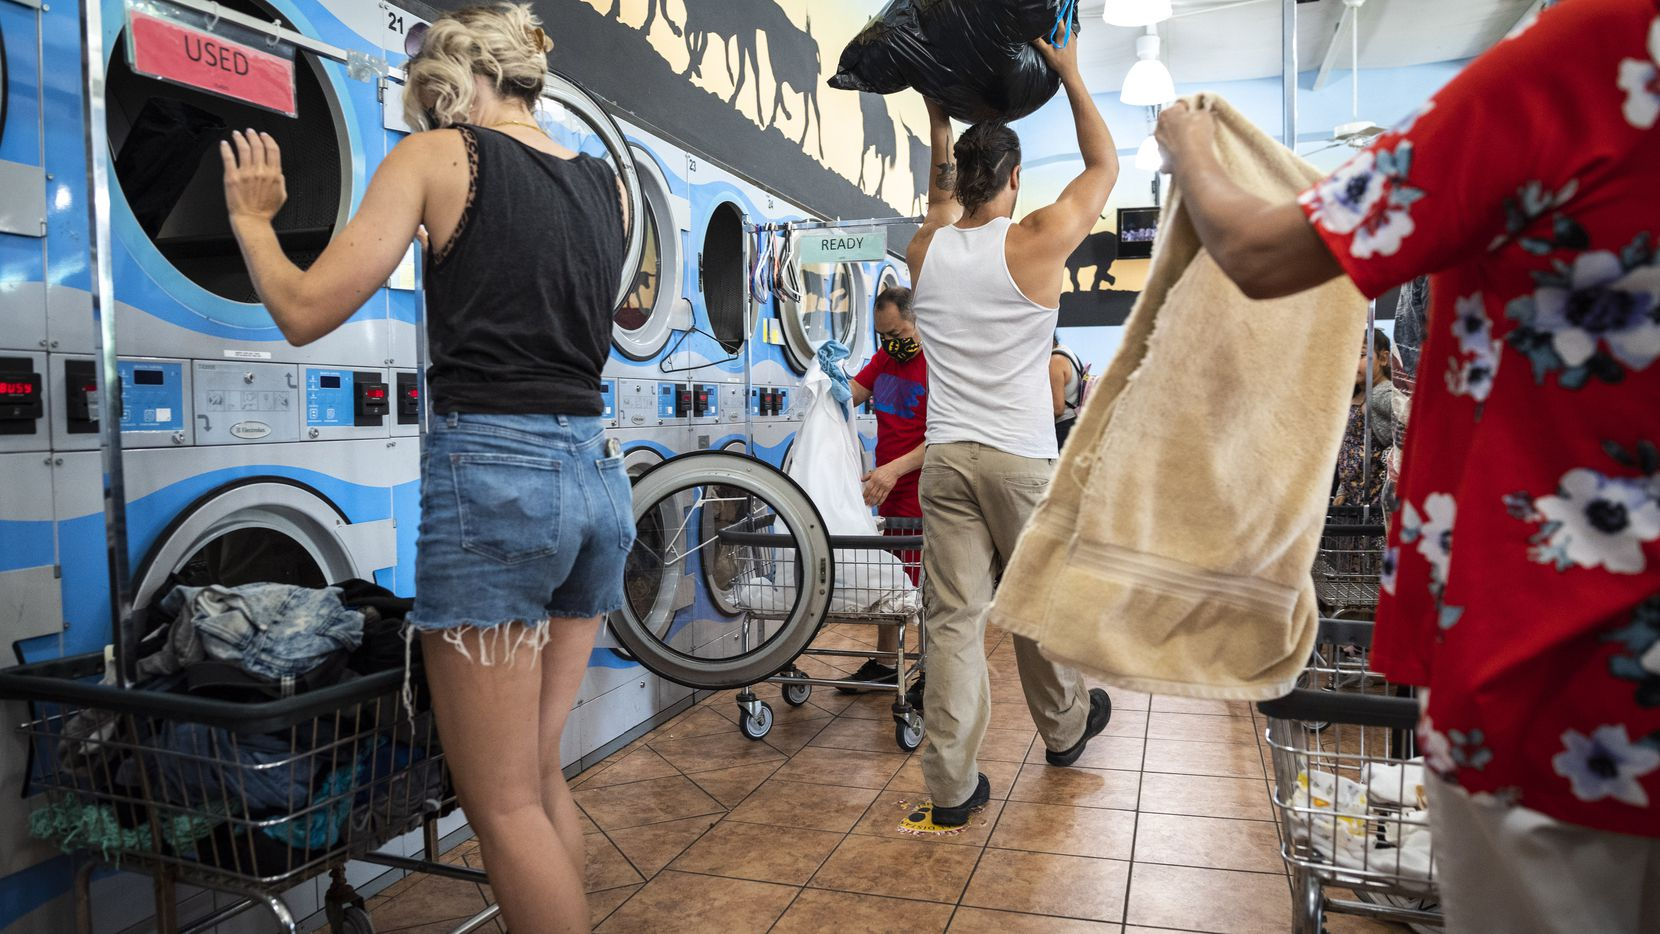 Volunteer Julian Shaffer, center, carries a load of dried clothes after washing for inventory as members of the organization Say It With Your Chest, washed clothes for homeless people, at Xpress Wash N Dry in Dallas, on July 25, 2021.